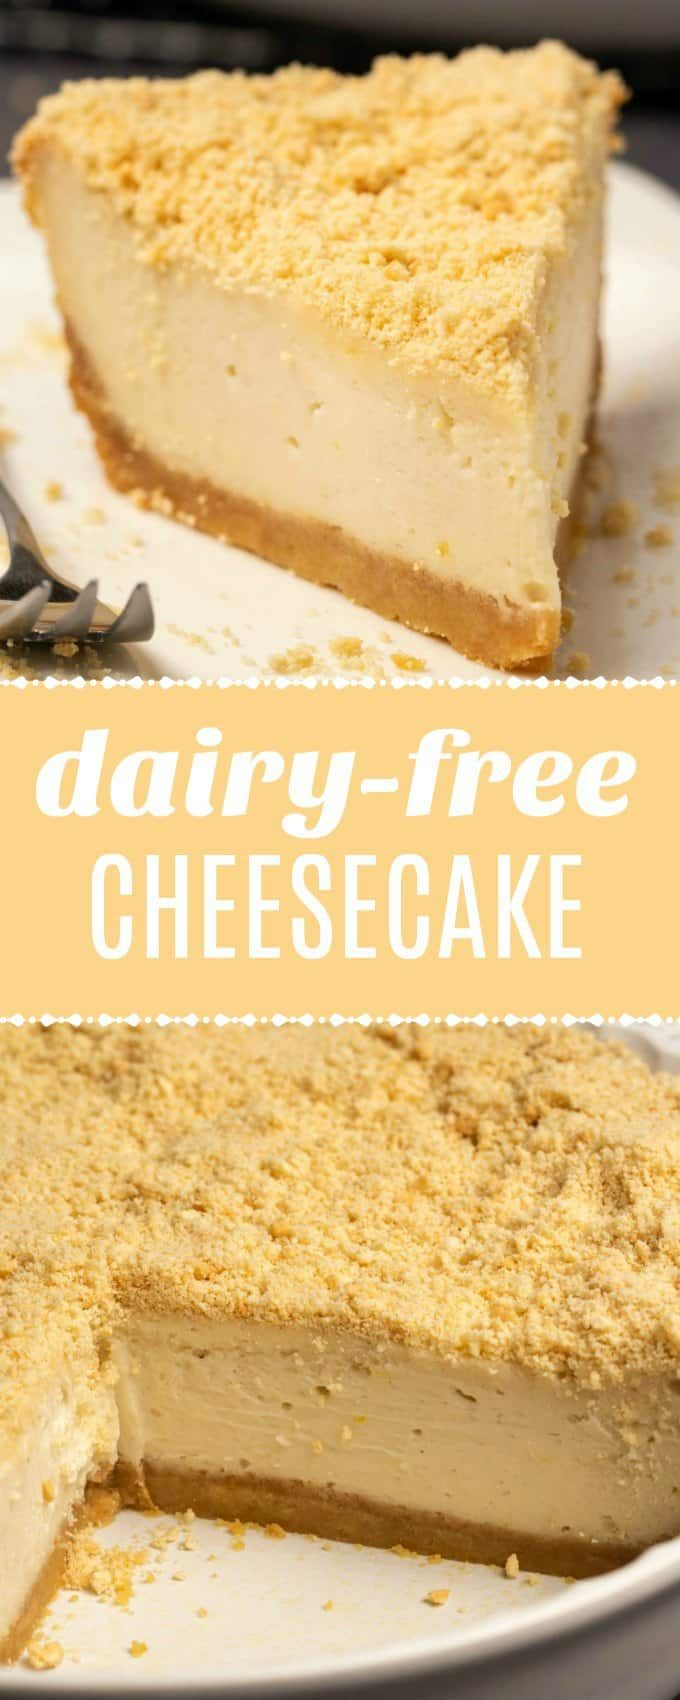 This baked dairy free cheesecake is just as good or better than any baked cheesecake you've ever had. It's creamy and cheesy and simply sensational! #vegan #dairyfree | lovingitvegan.com #dairyfreesmoothie